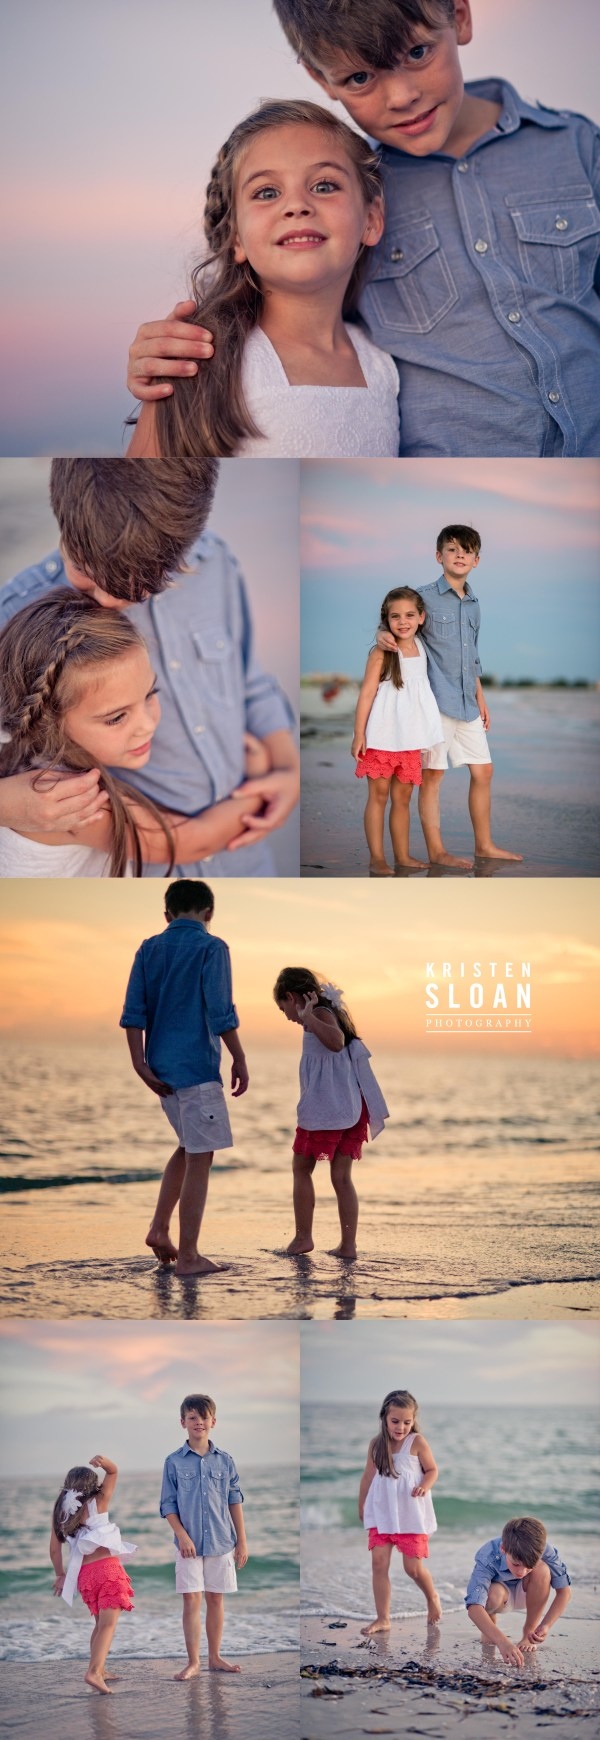 Treasure Island St Pete Beach FL Family Kids Photographer Kristen Sloan